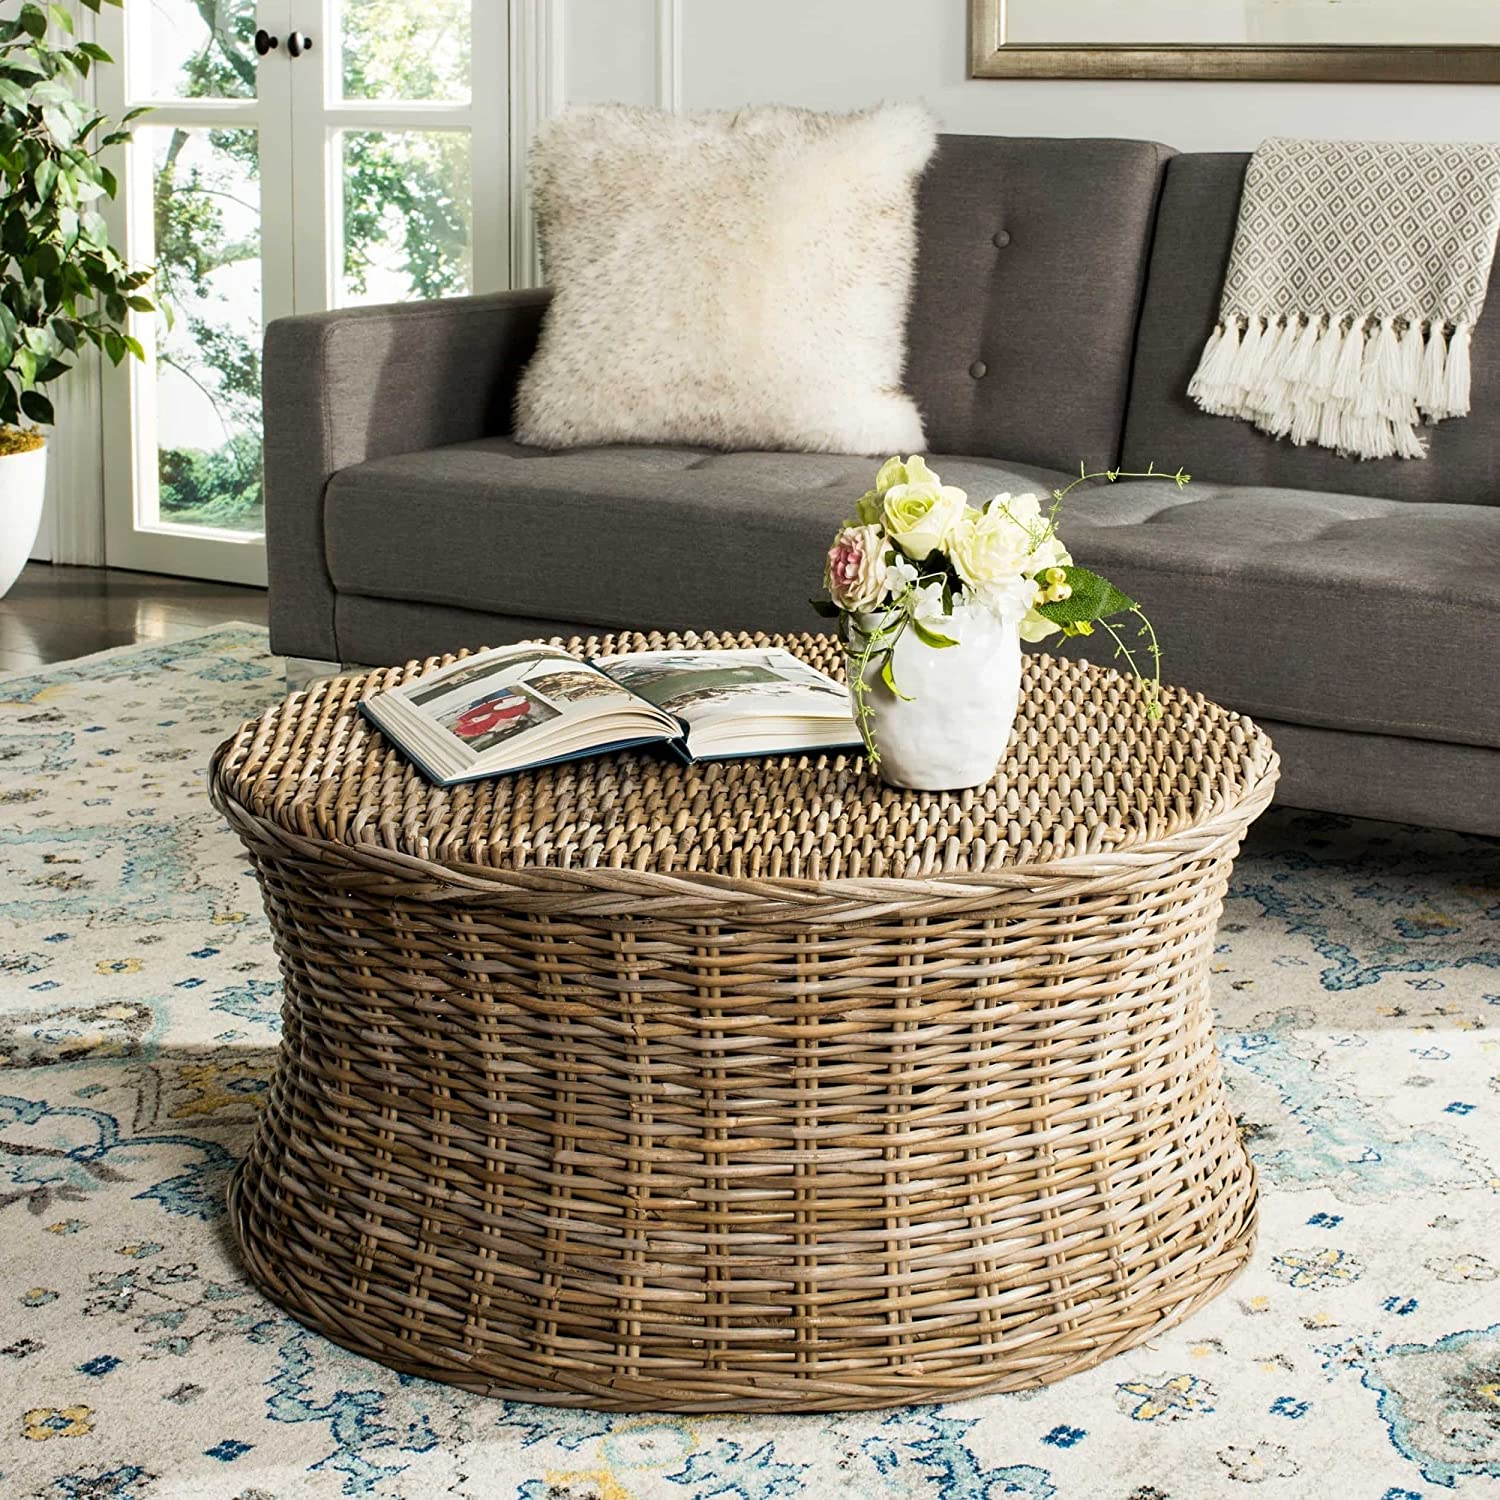 Amazon Com Wicker Round Coffee Table Woven Natural Rattan Palm Sturdy Kitchen Dining